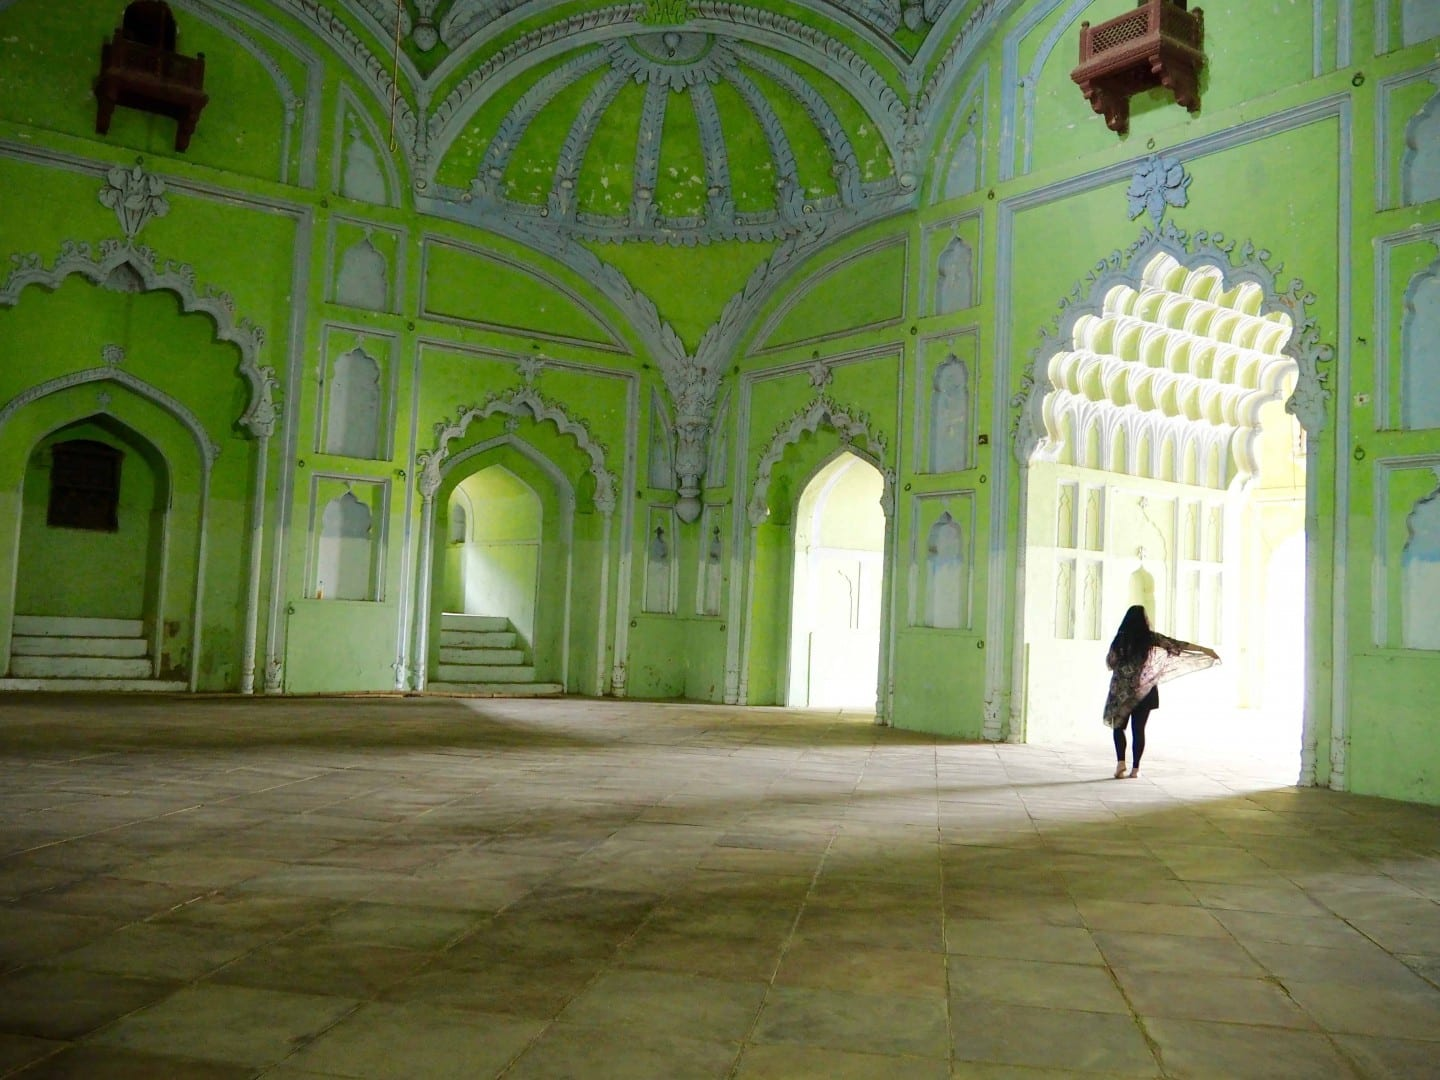 LUCKNOW ITINERARY | 2 days in Lucknow | Things to do in Lucknow